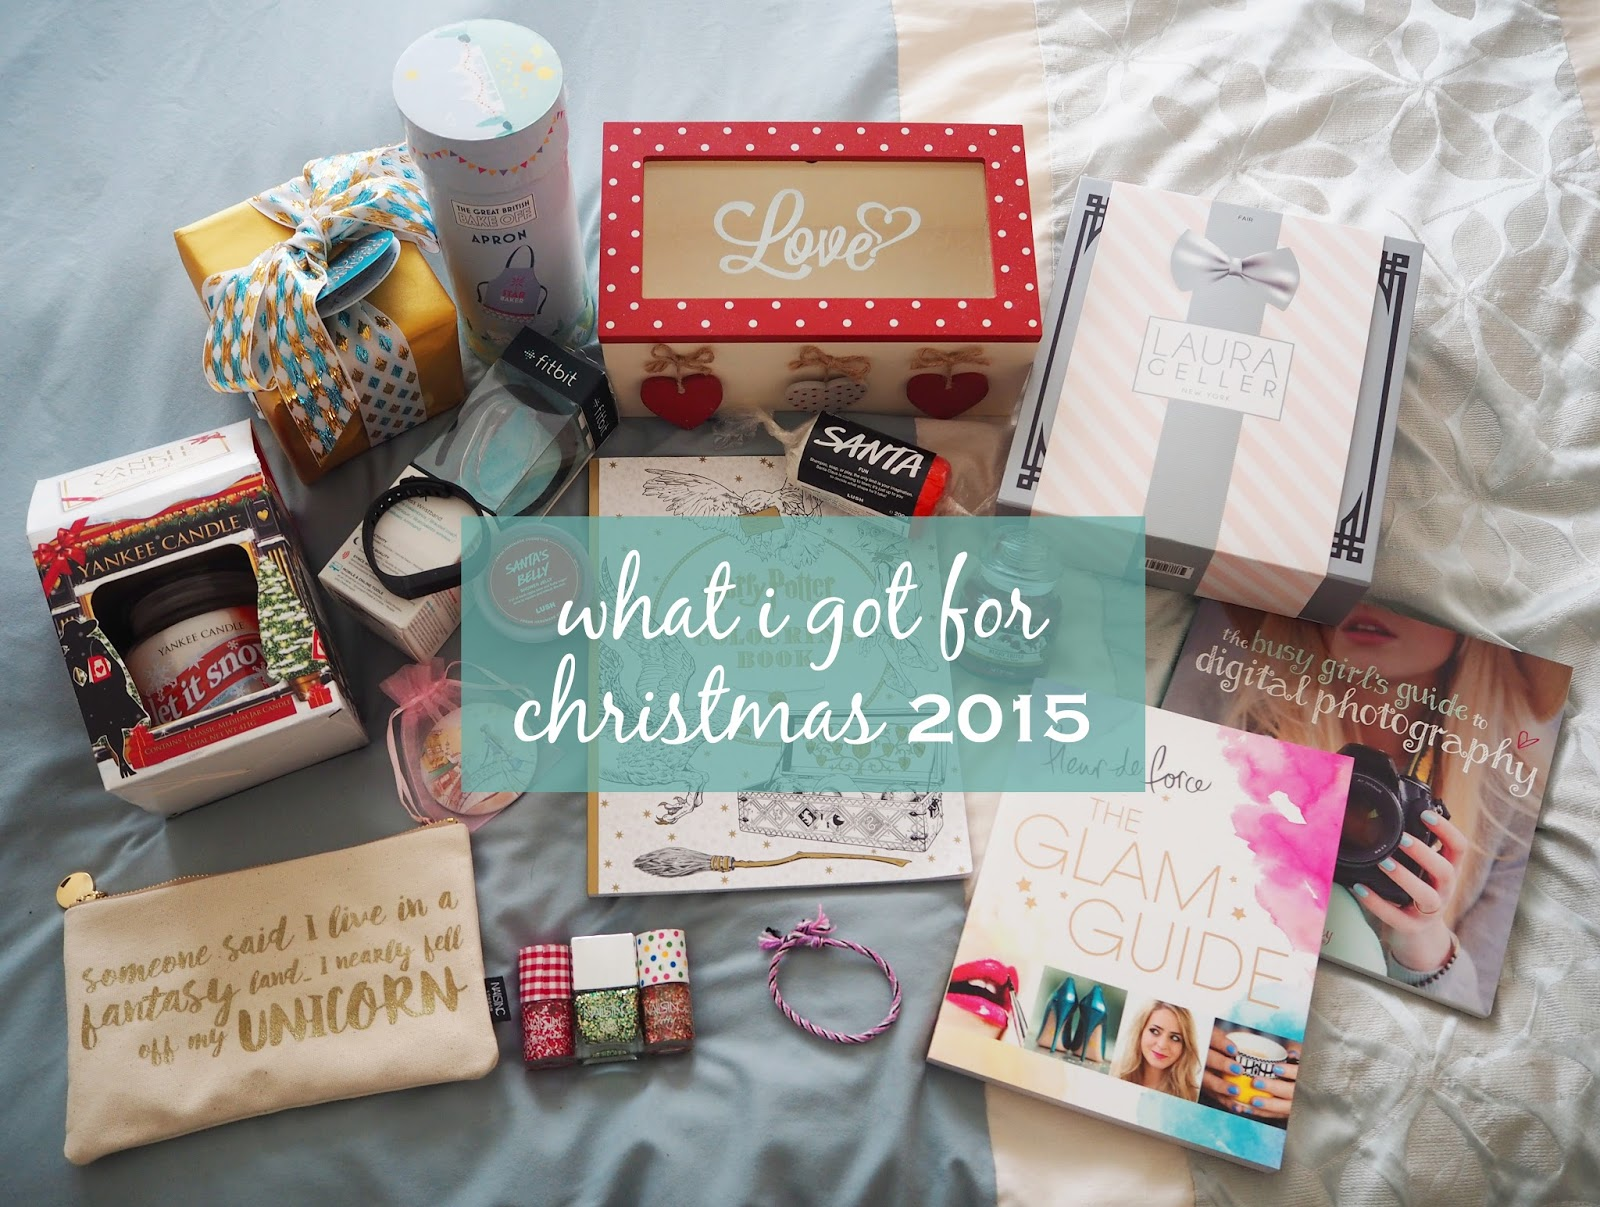 Christmas Throwback: Blogs From 2015, Katie Kirk Loves, UK Blogger, UK Fashion Blogger, UK Beauty Blogger, UK Lifestyle Blogger, UK Food Blogger, West Sussex Bloggers, Brighton Blogger